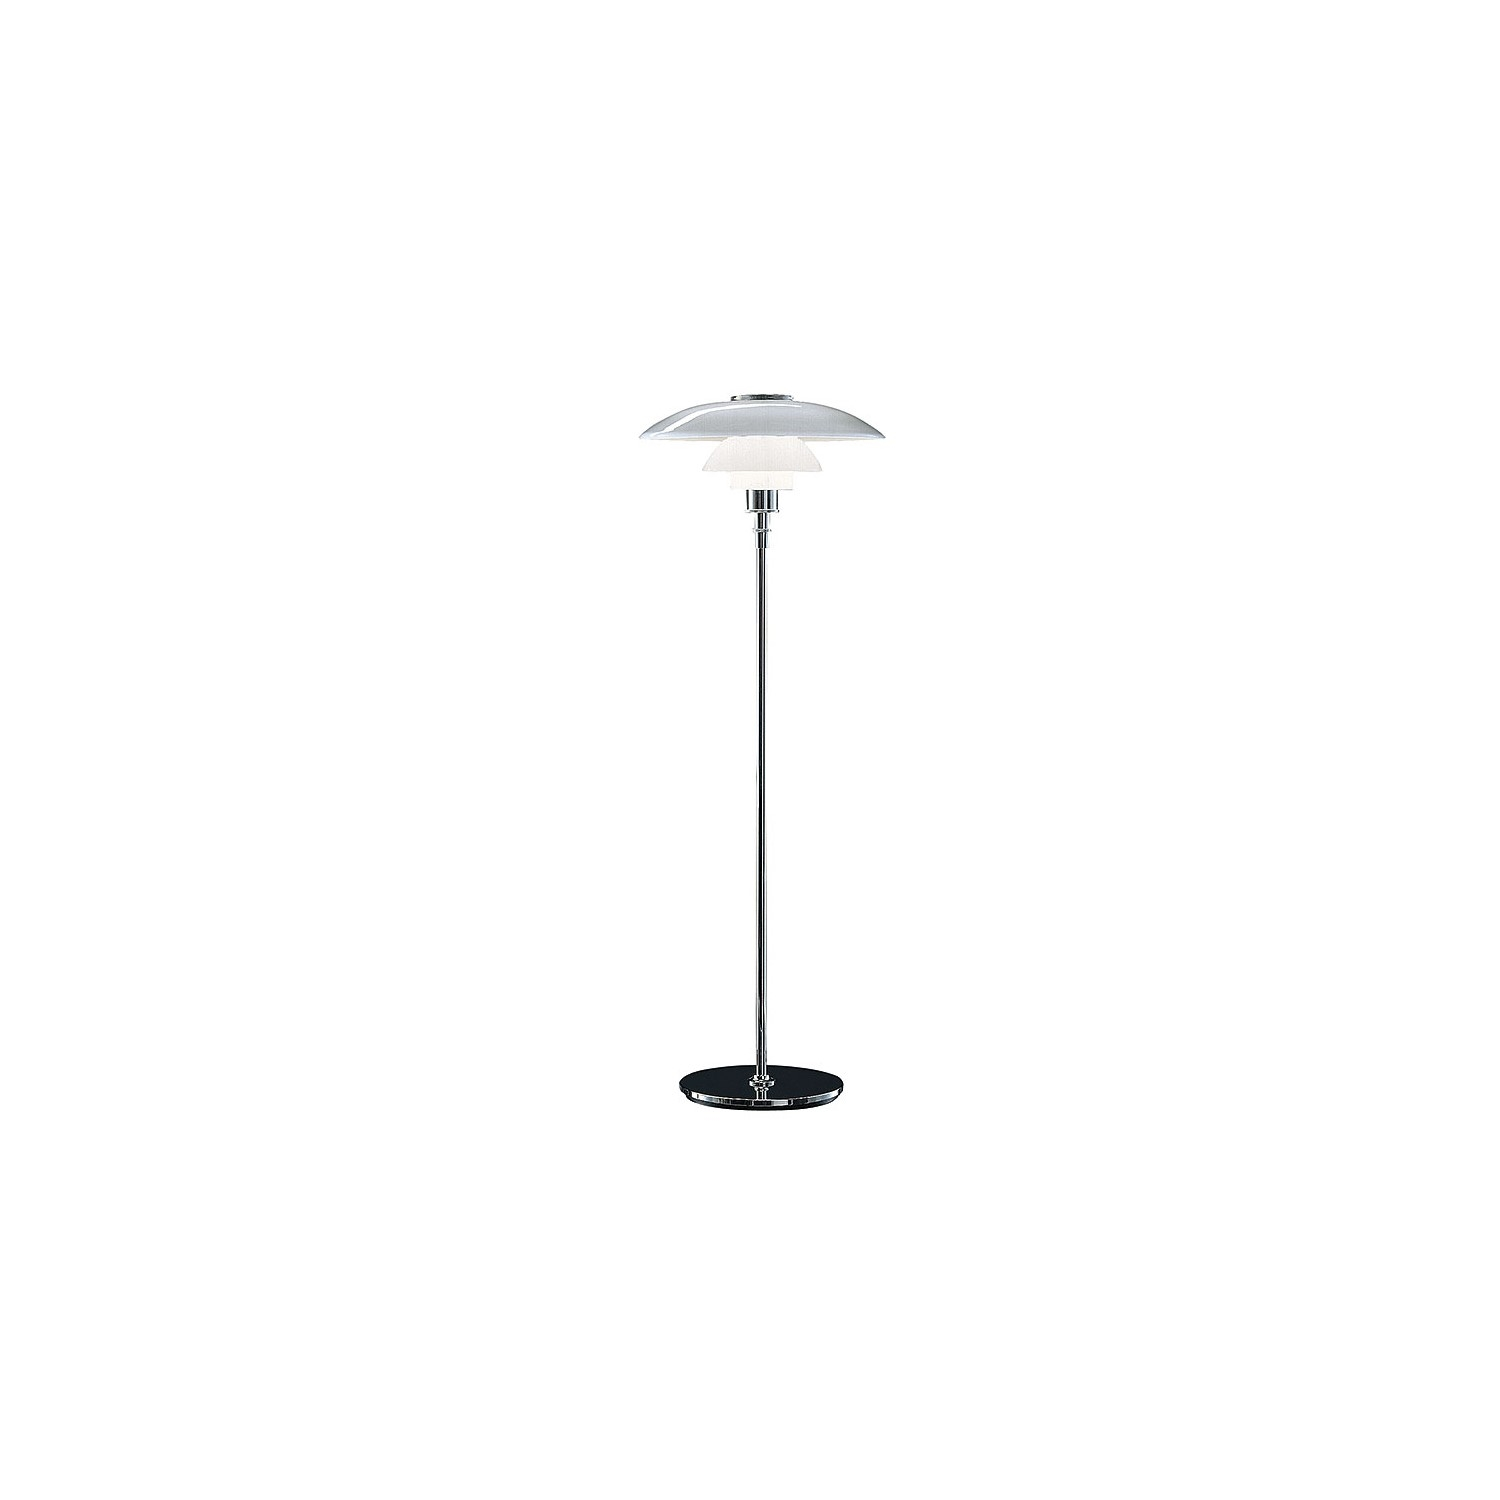 Ph Lampe Pris. Amazing Vglamperne Ph Hat Ph Vg Og Flere Andre With Ph Lampe Pris. The Floor With ...